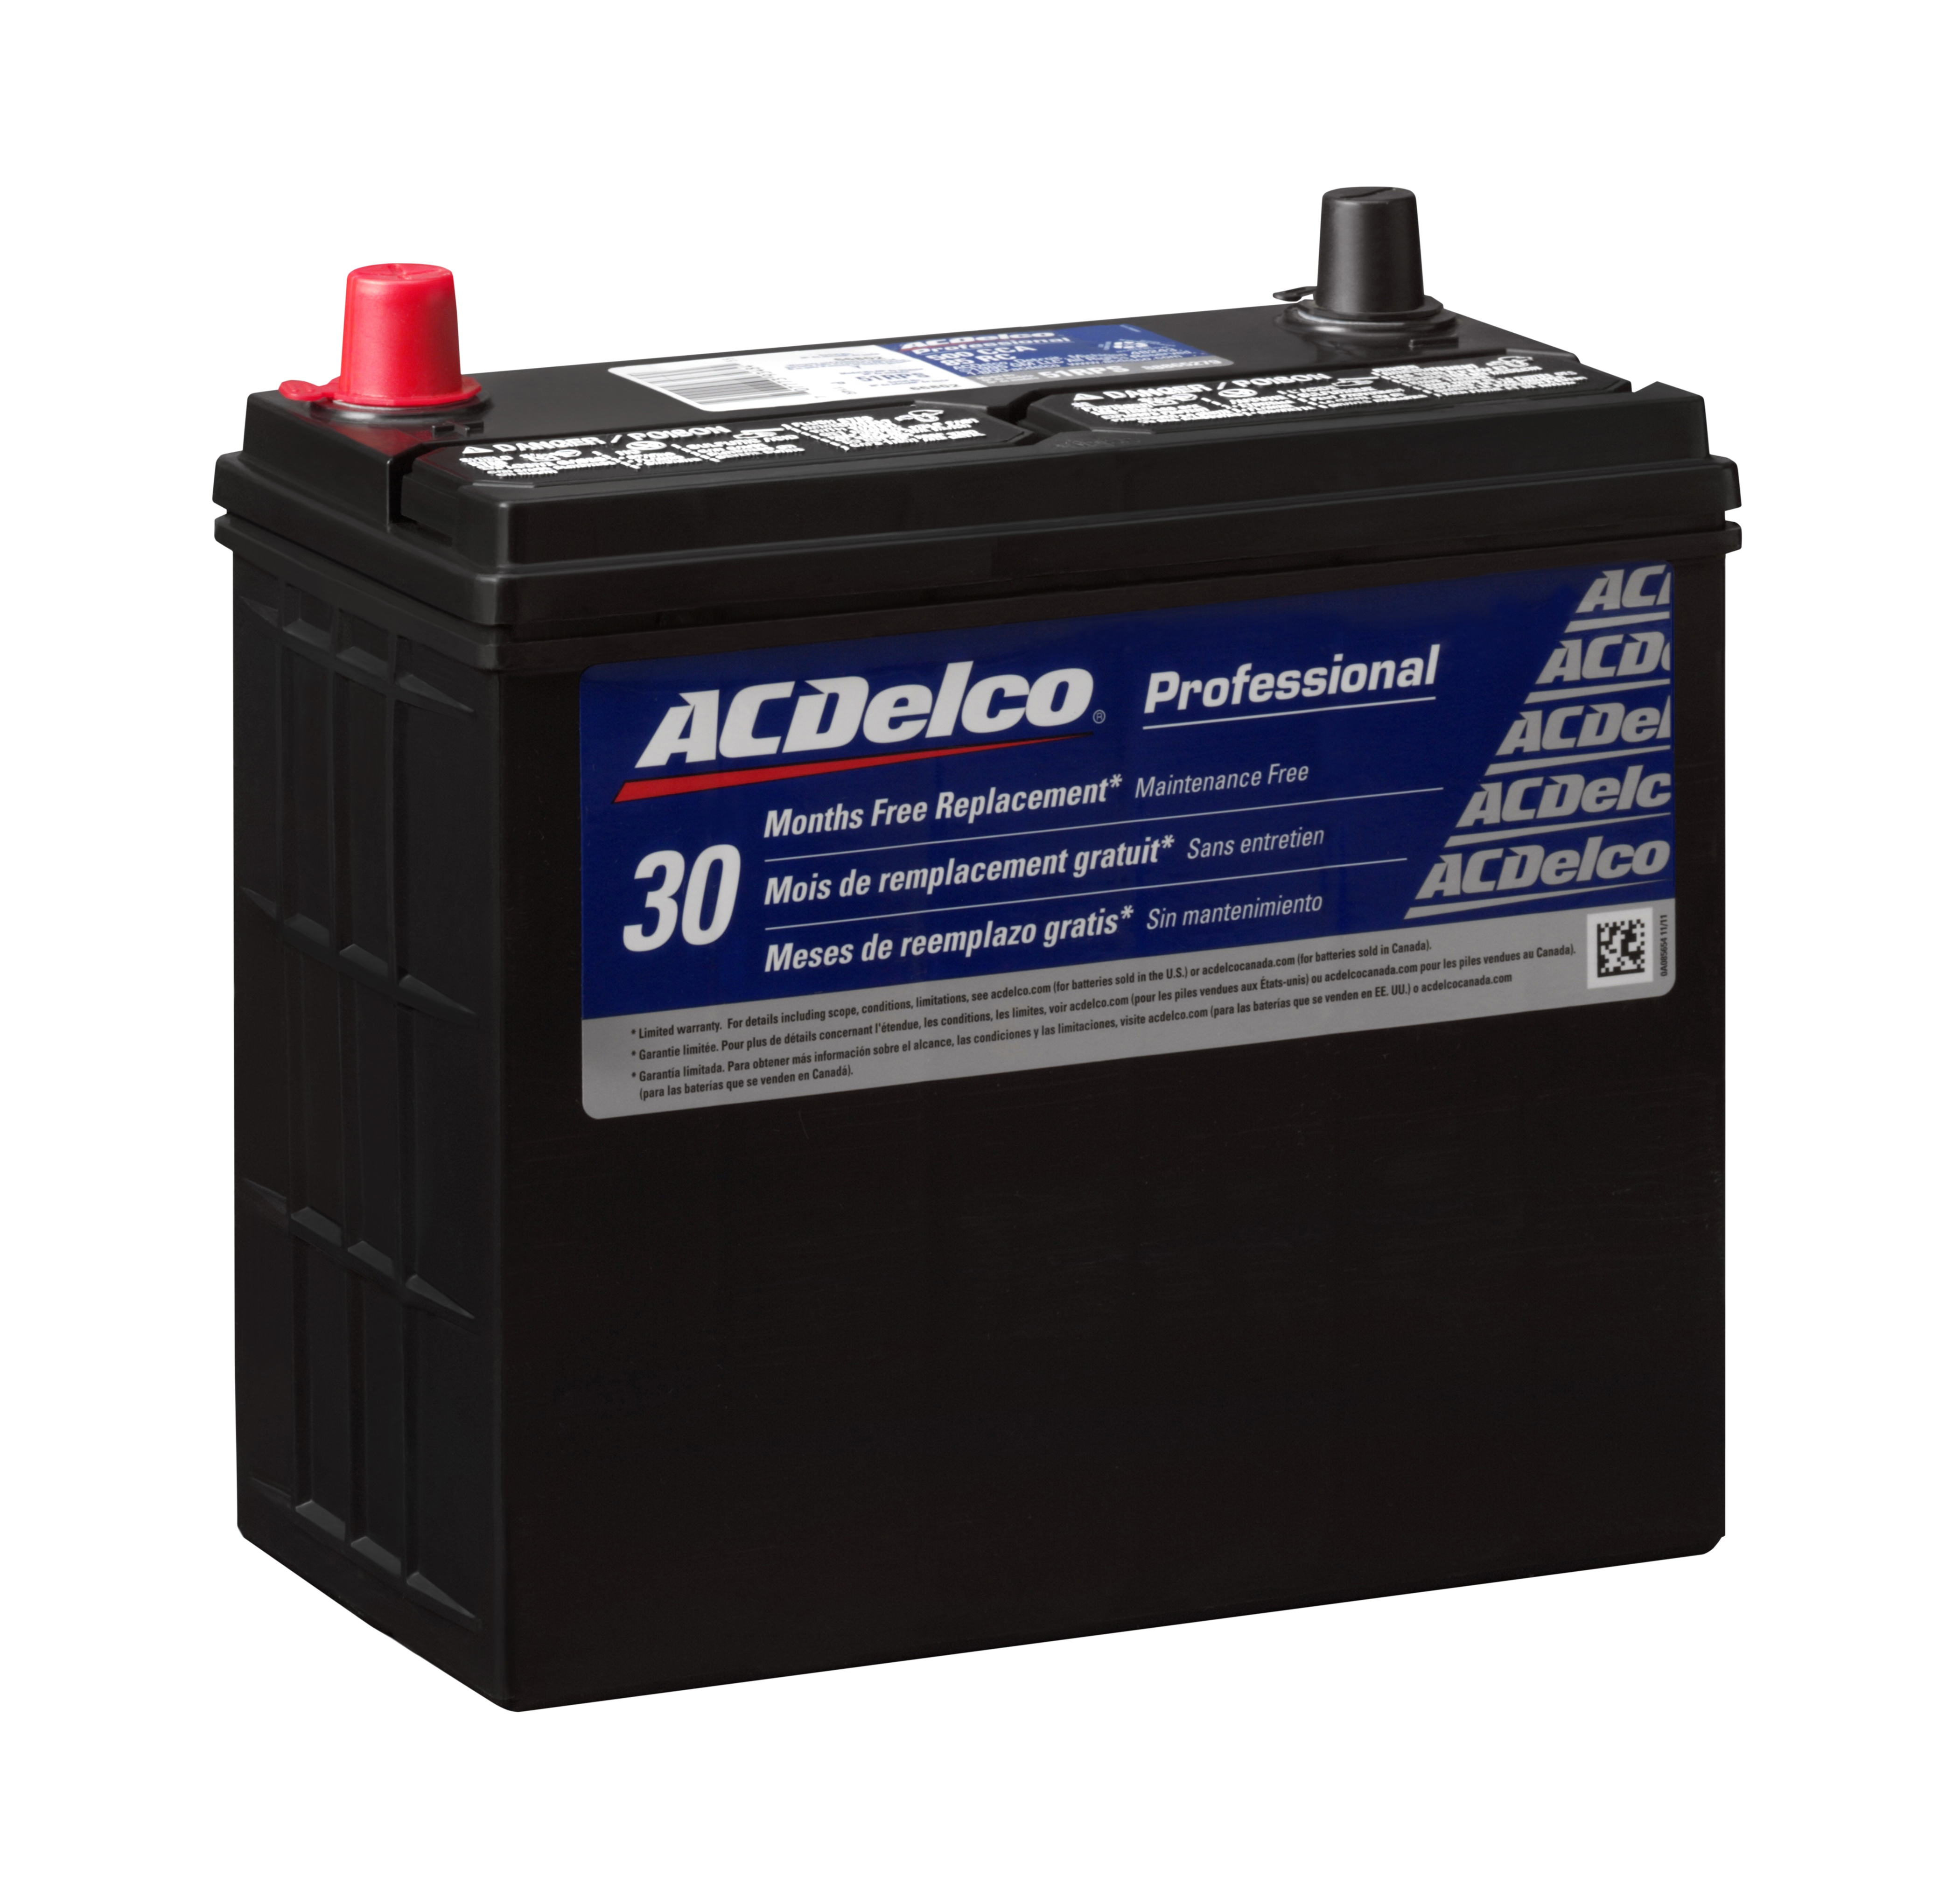 ACDELCO PROFESSIONAL 88865279 BATTERY ASM 51RPS